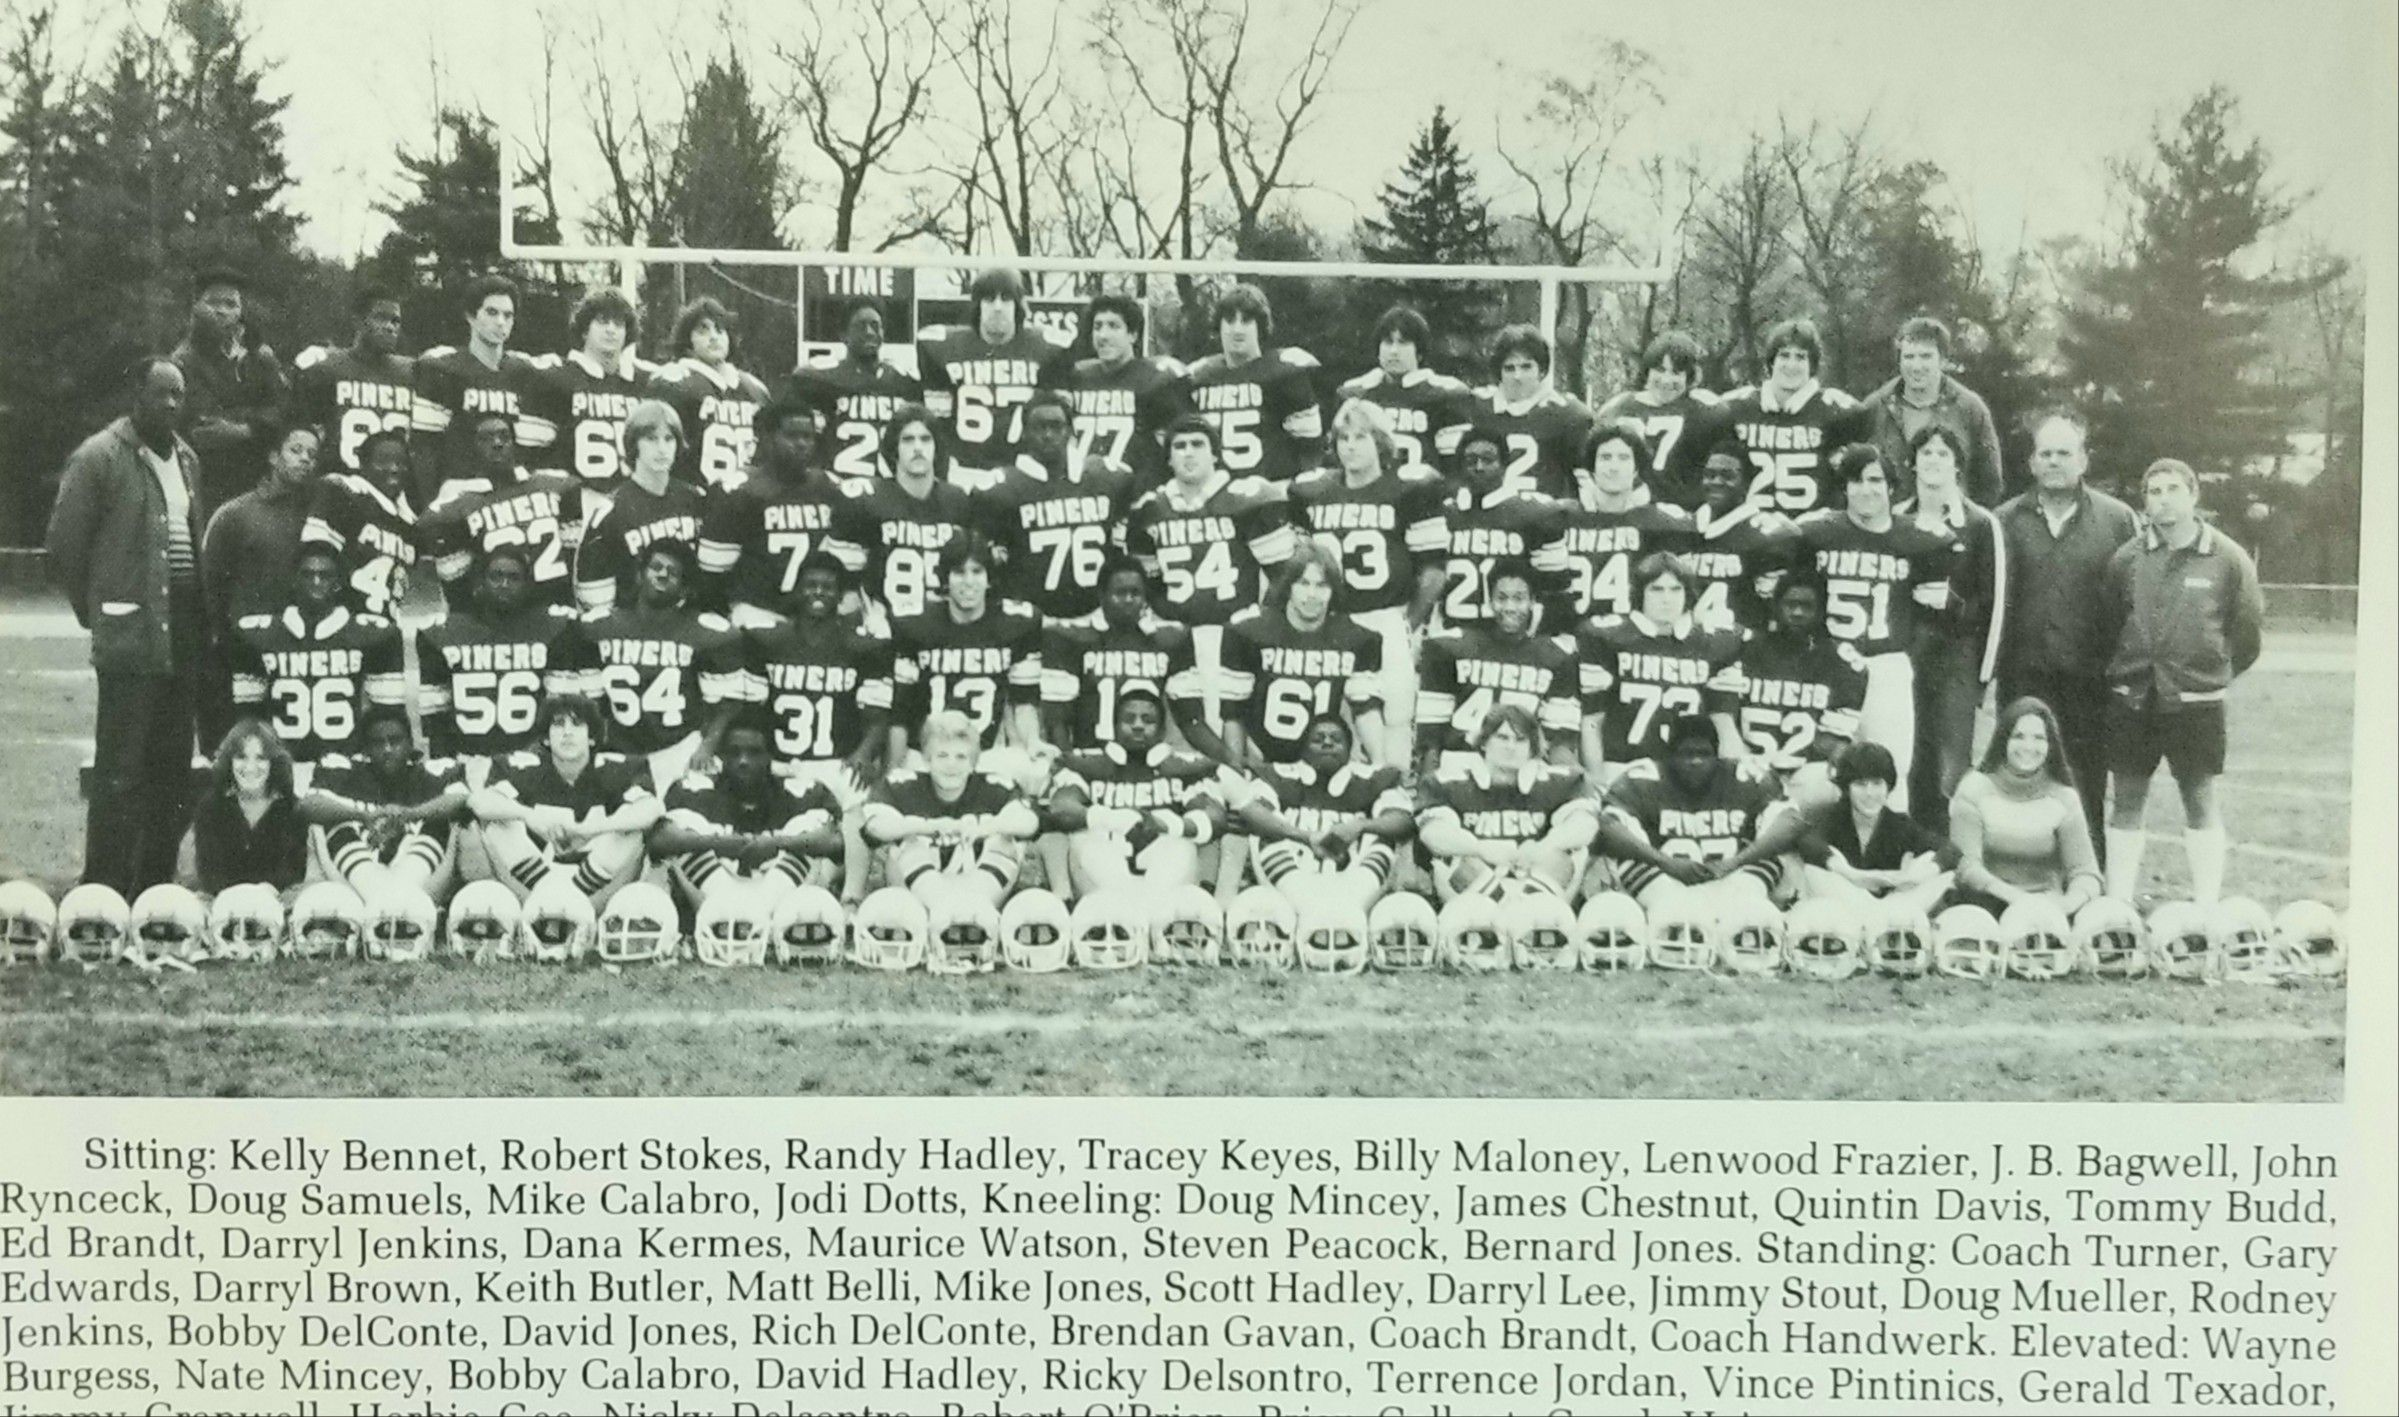 1979 lakewood piners football squad team photo with